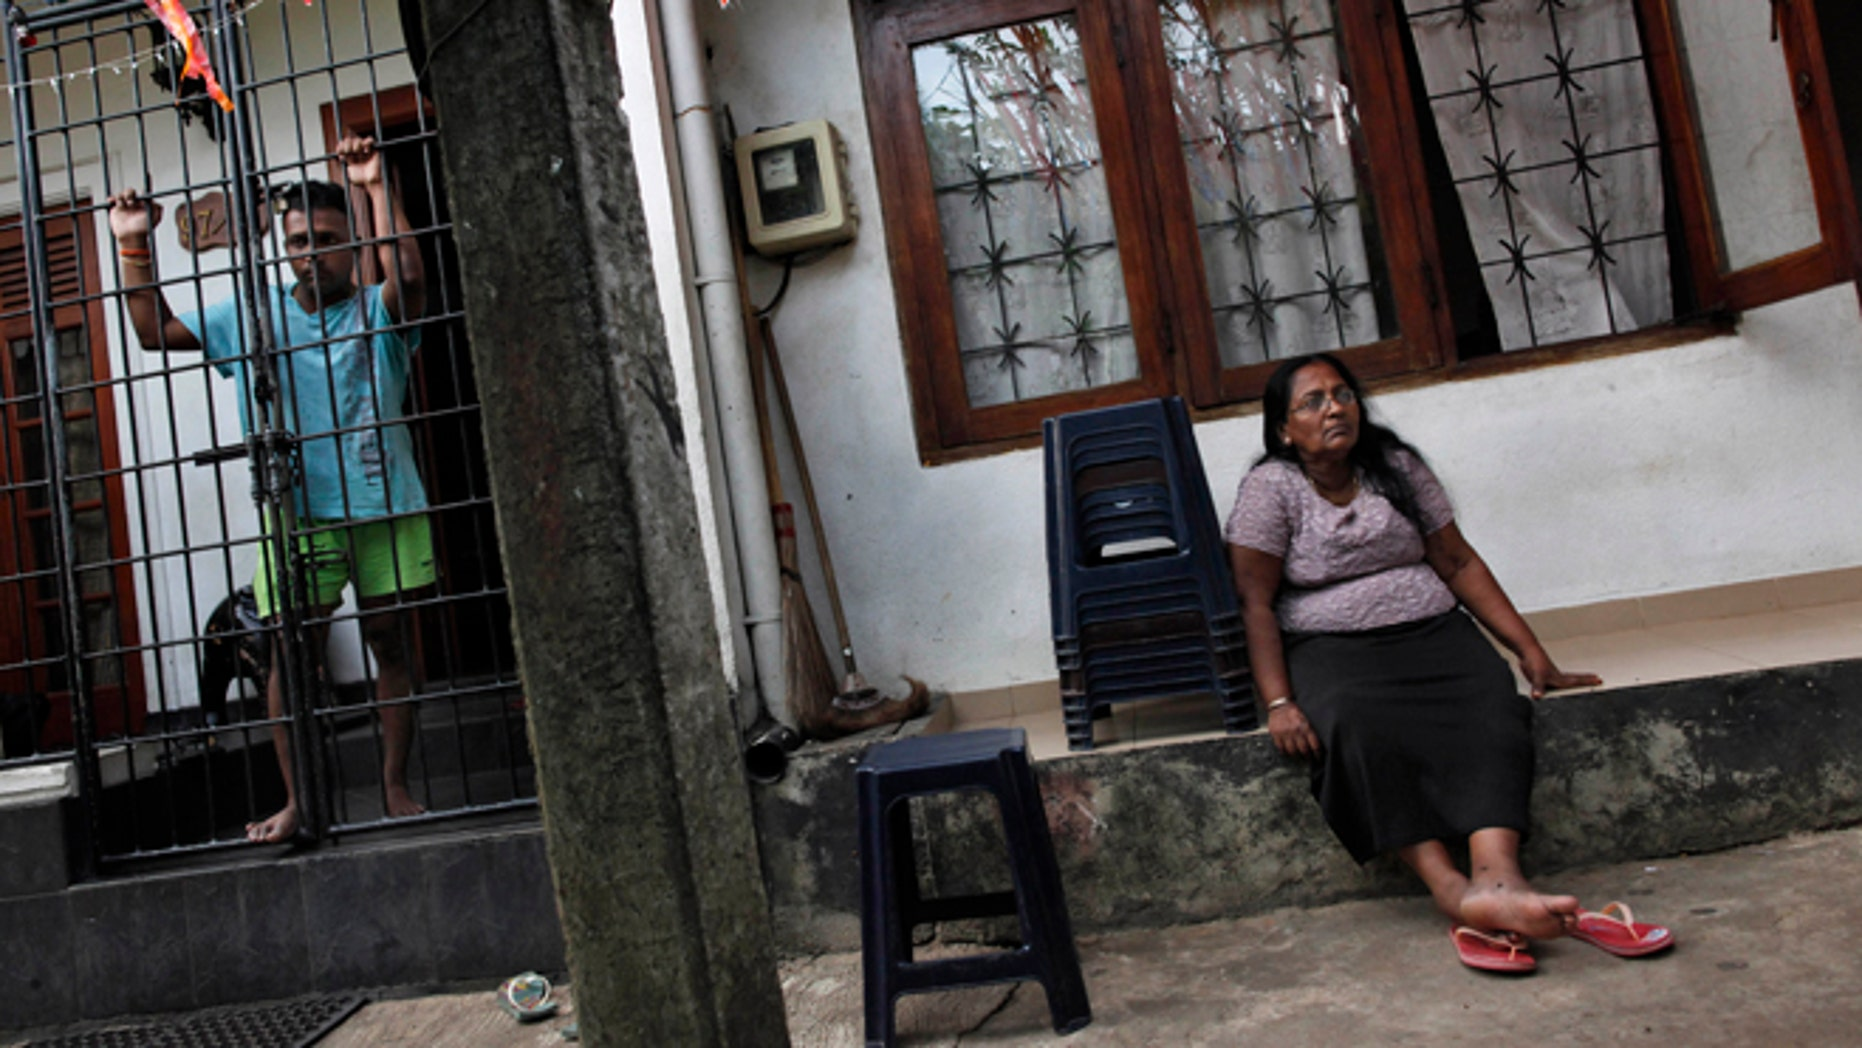 May 7, 2012: Ravindra Udayashantha, left, a 38-year-old town council chairman looks through iron bars guarding the entrance to his house, as his mother Rupawathi Perera sits outside in Kolonnawa, suburb of Colombo, Sri Lanka.